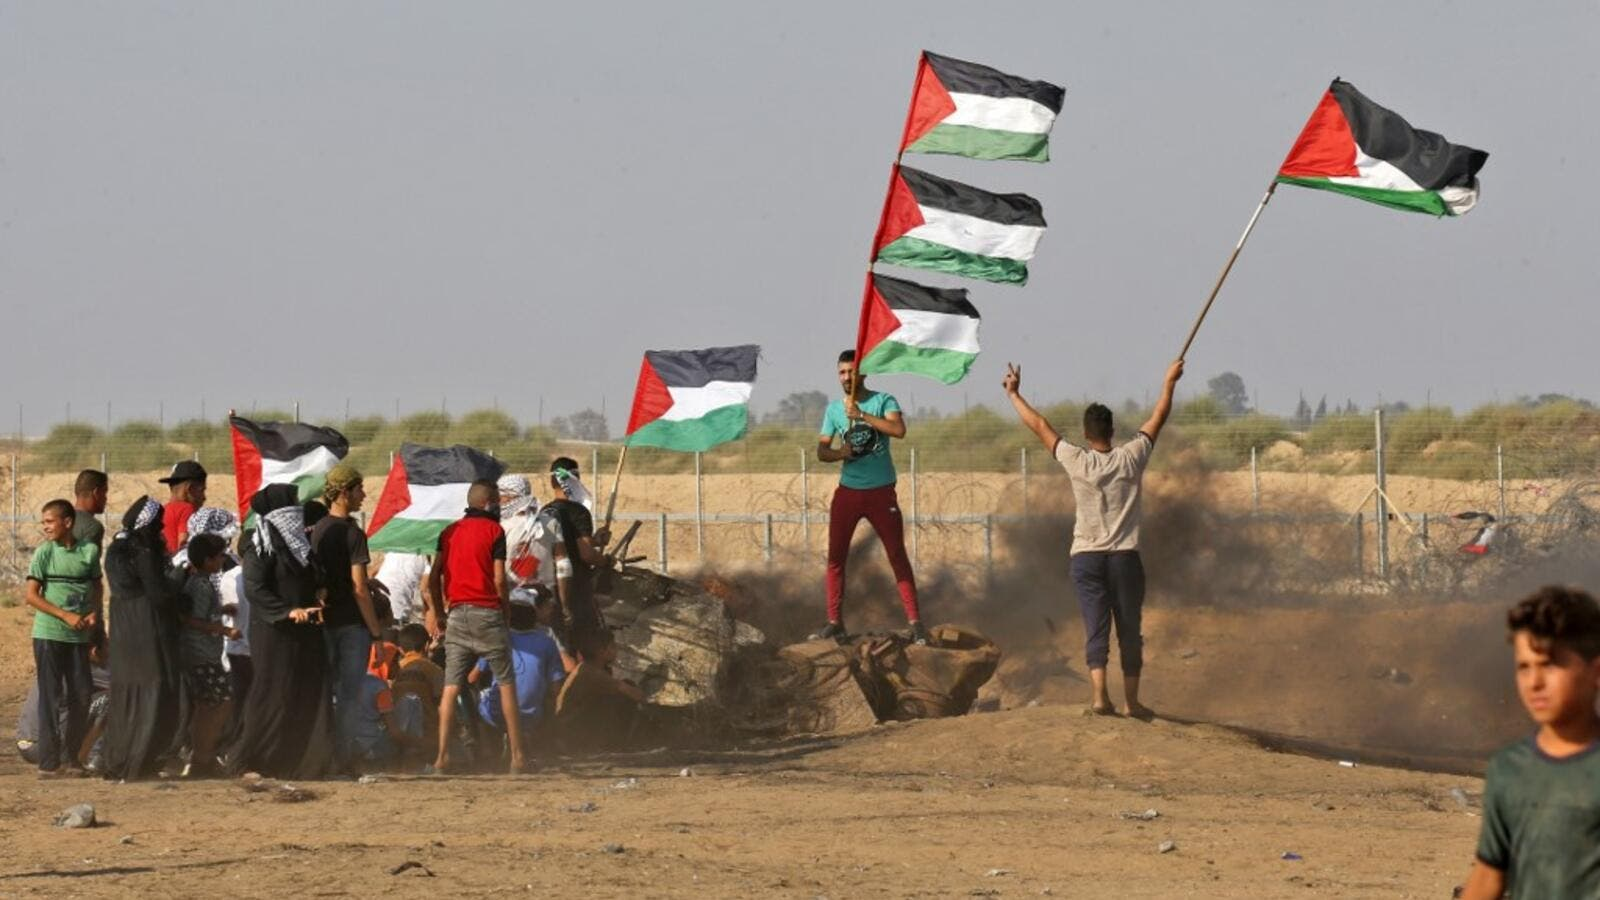 Palestinian demonstrators wave the national flag during clashes between Palestinian protesters and Israeli forces. (AFP/ File Photo)